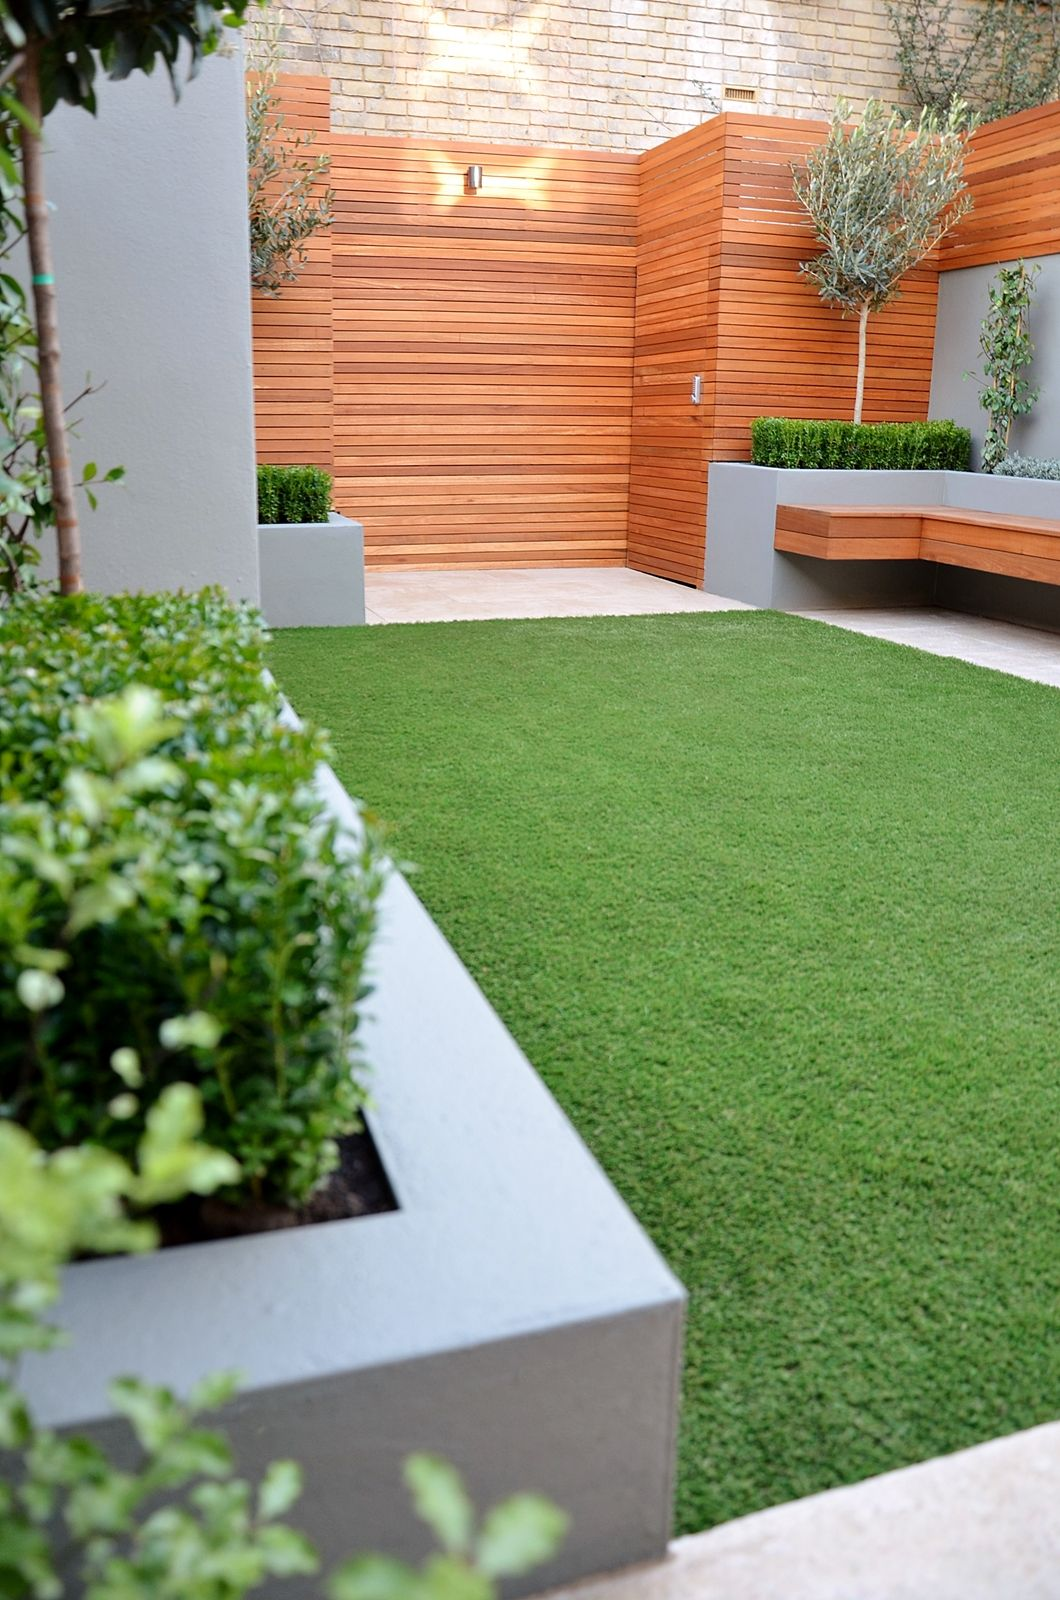 Garden Design Artificial Grass hardwood screen raised beds in grey floating bench bespoke storage